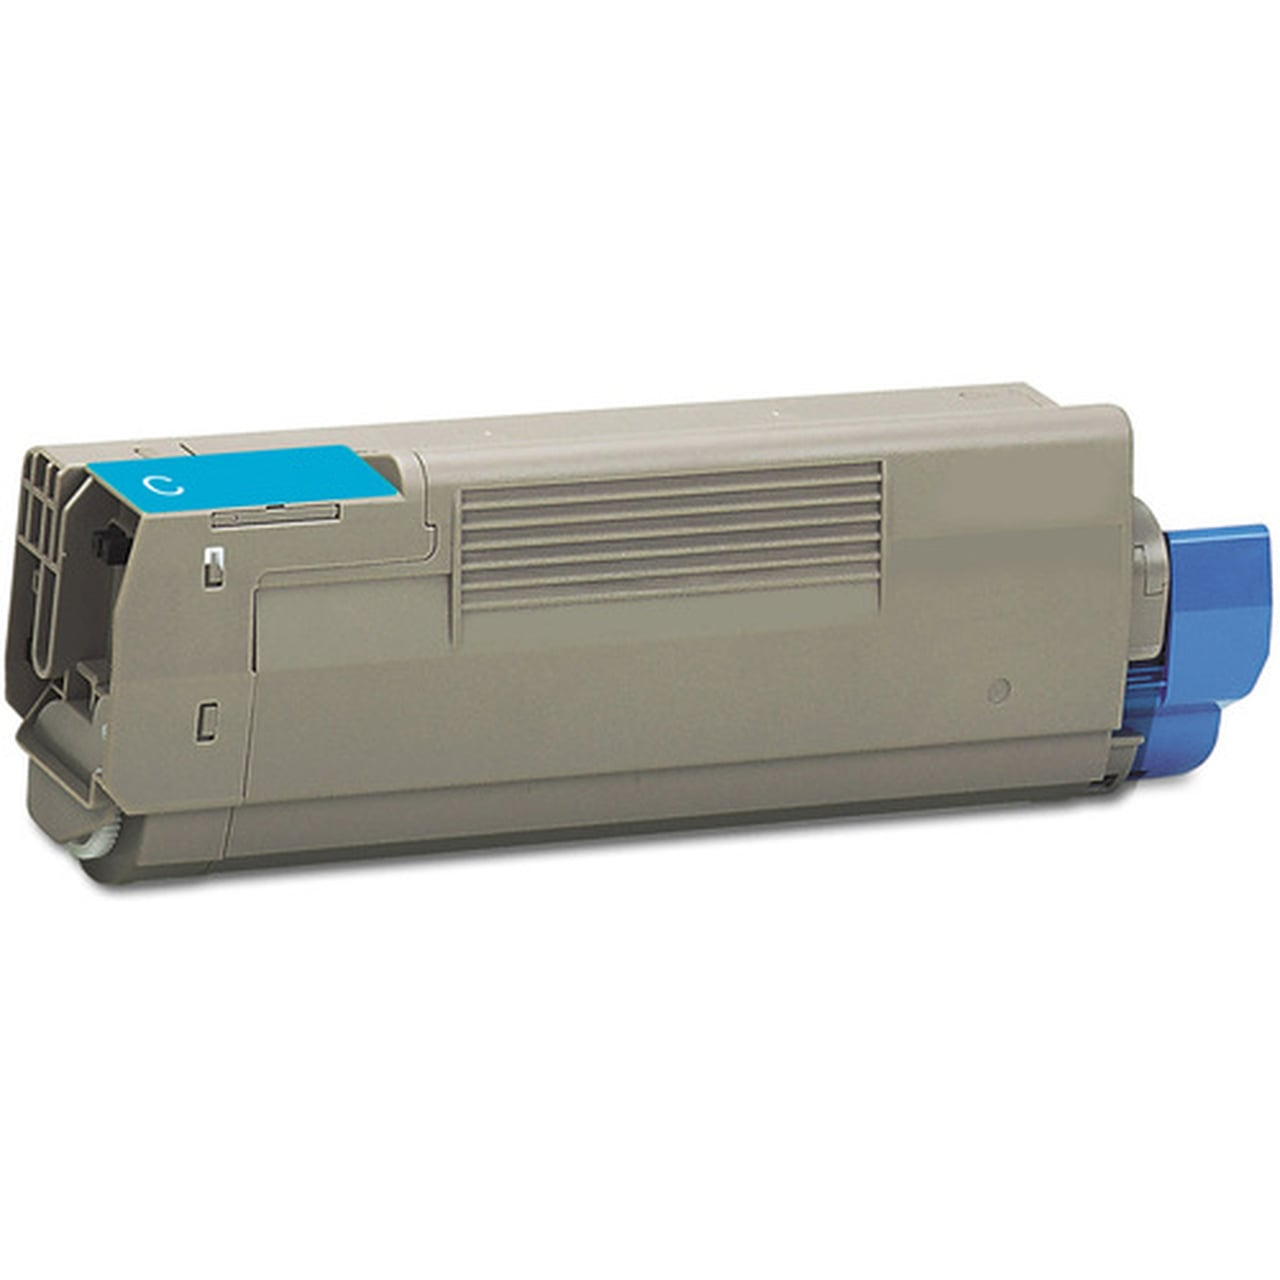 43487735 Toner Cartridge - Okidata Remanufactured (Cyan)